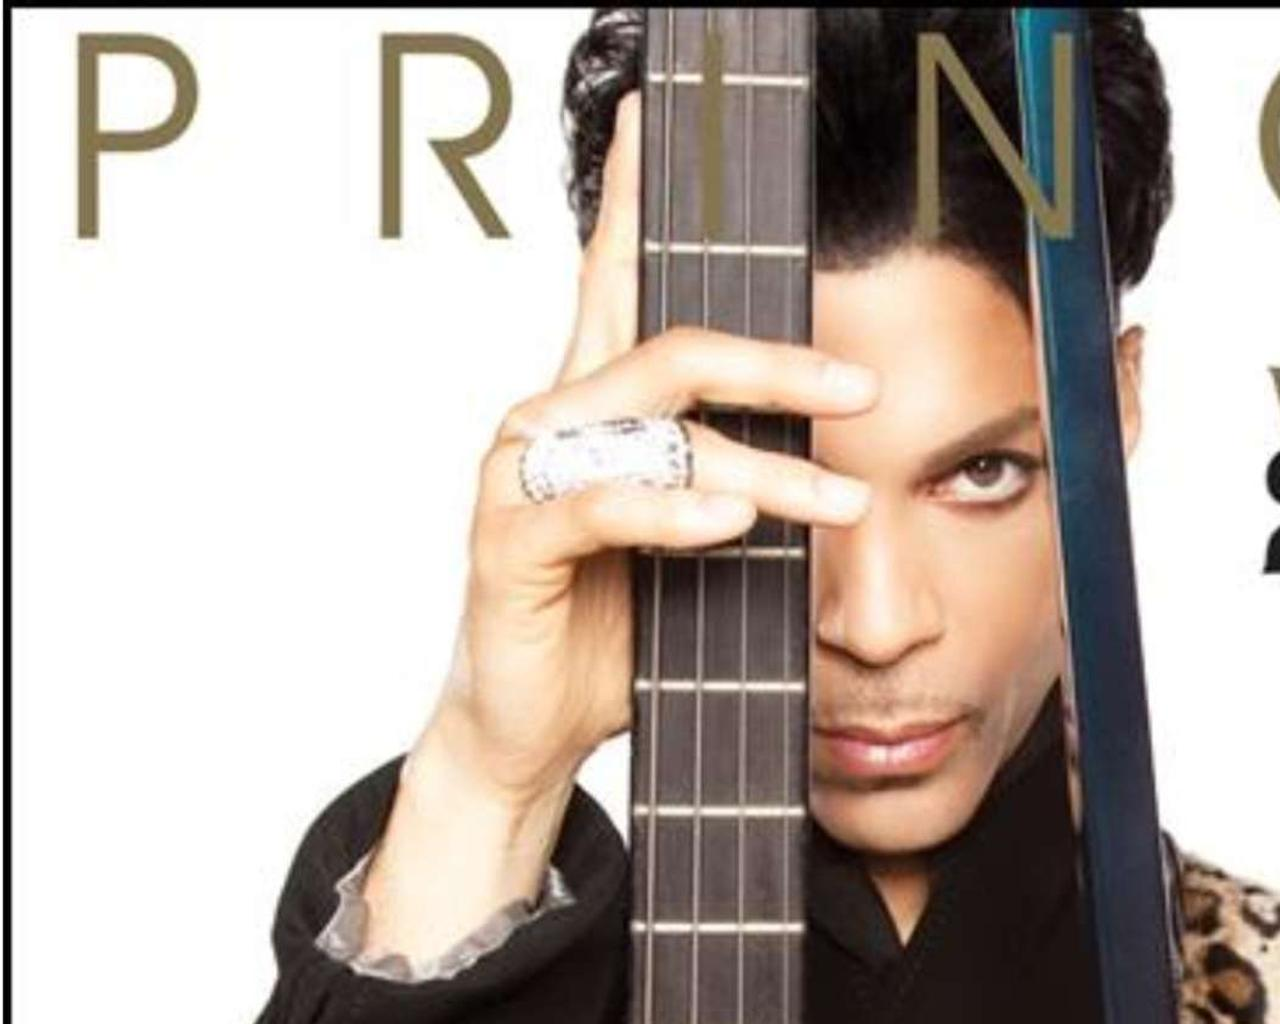 """Prince's unreleased album, """"Welcome 2 America,"""" is set to be released in July."""